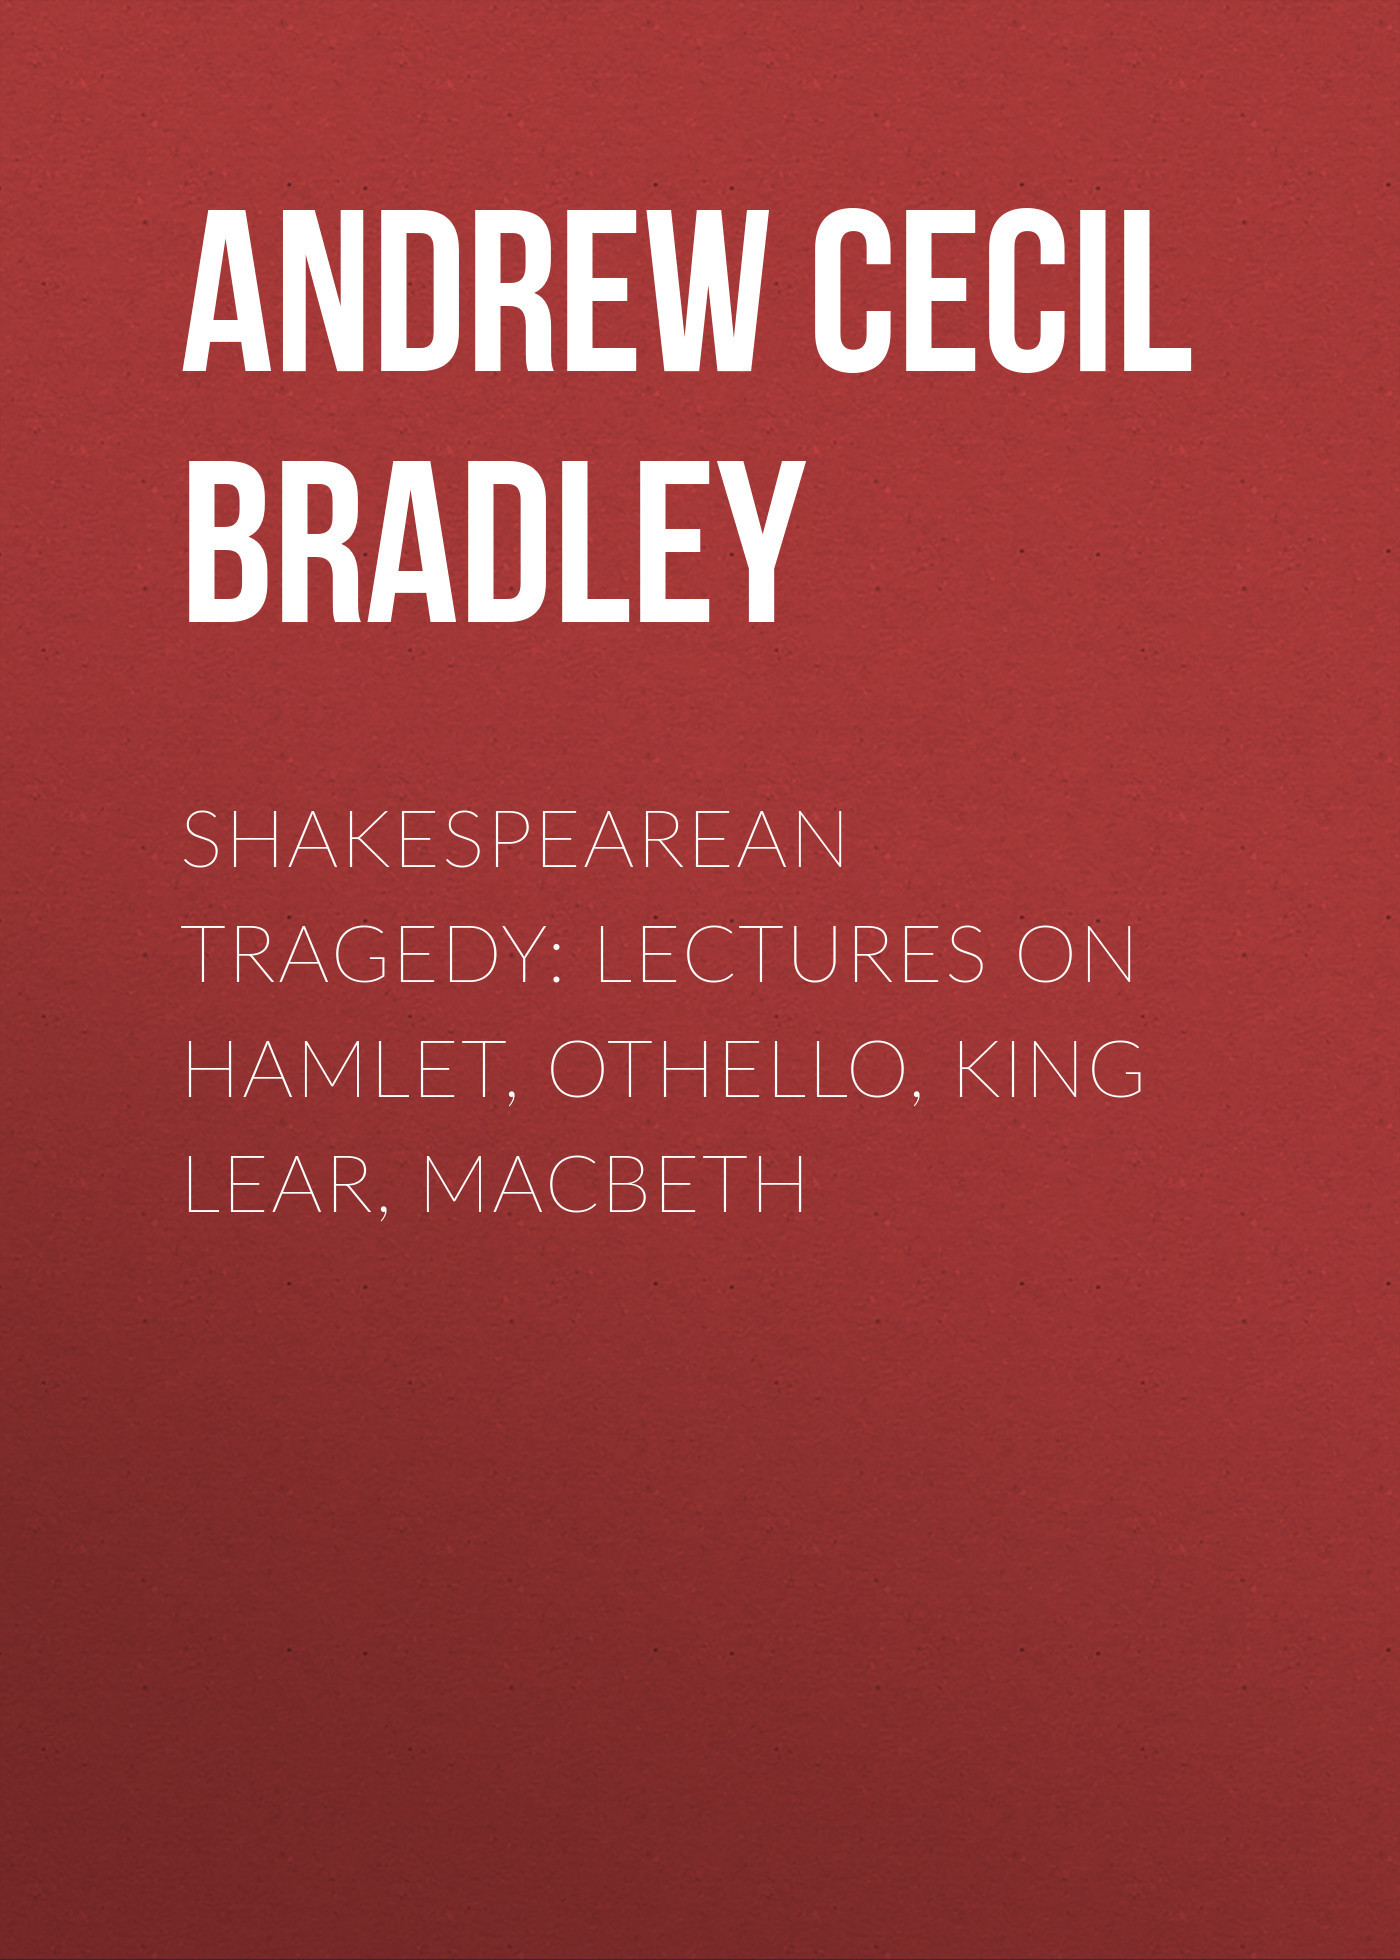 Andrew Cecil Bradley Shakespearean Tragedy: Lectures on Hamlet, Othello, King Lear, Macbeth hamlet ned r